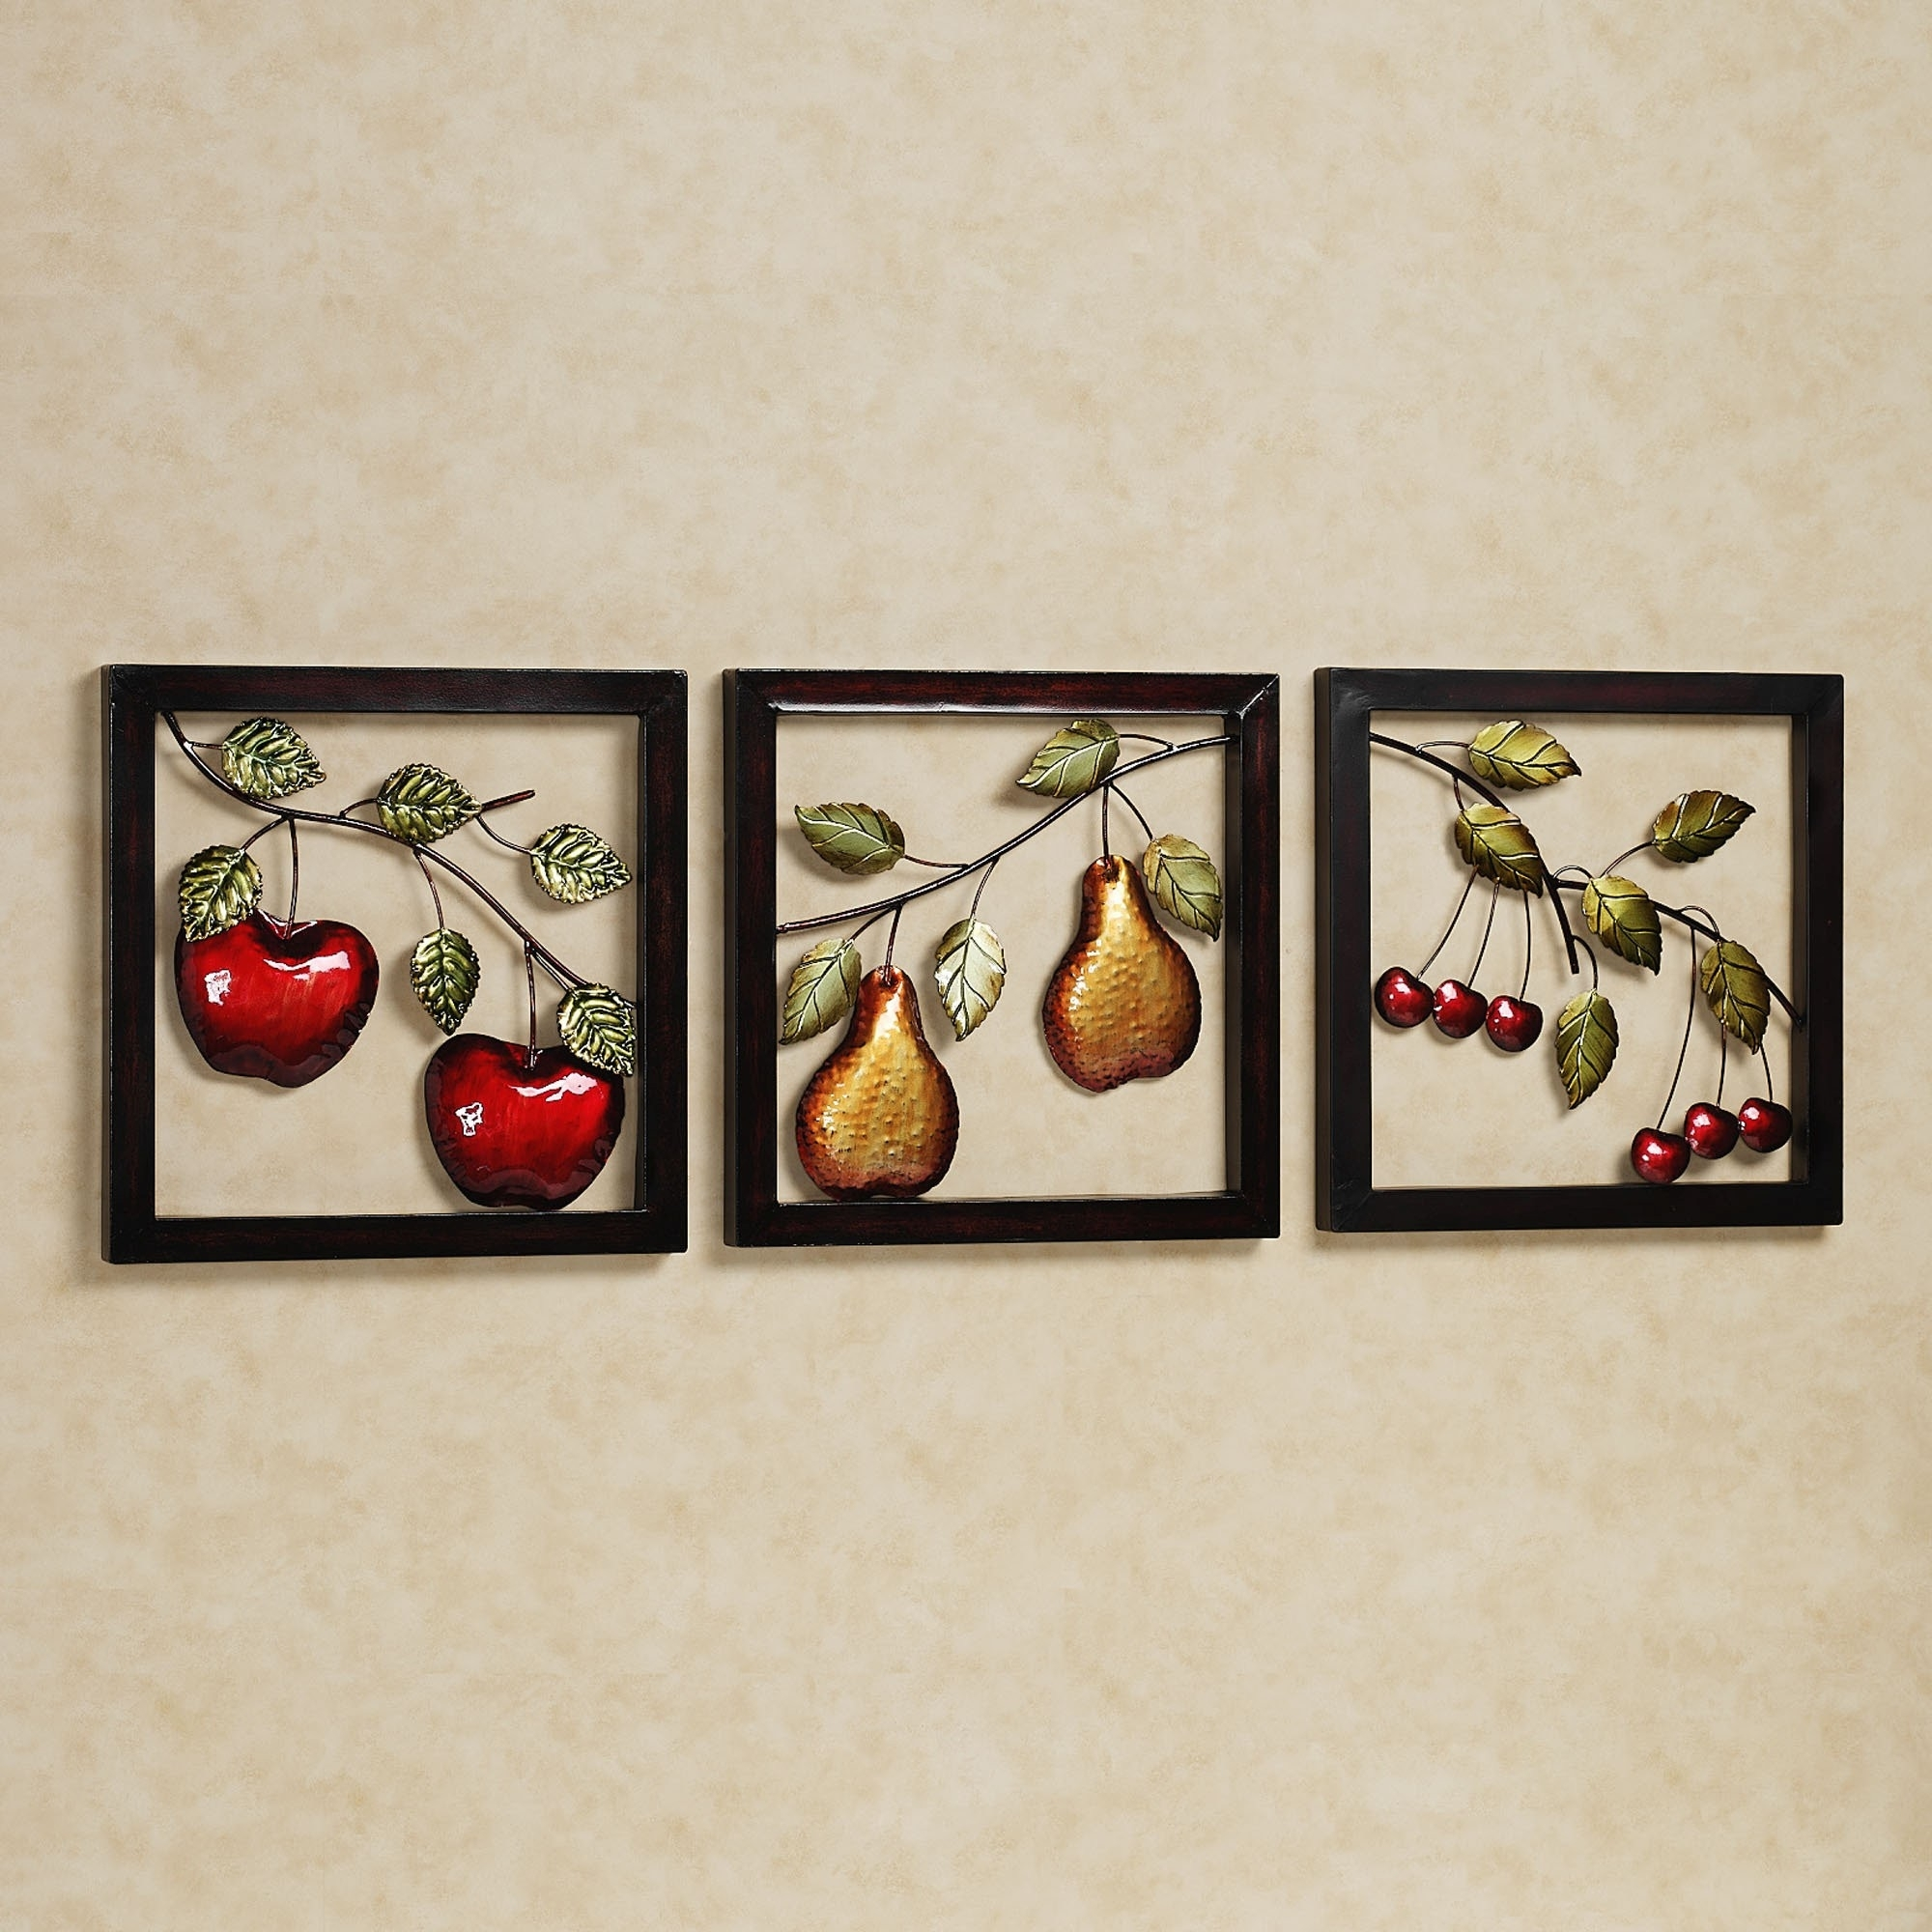 Wall Decor For Kitchen Terrific Captivating Kitchen Metal Wall Art In Kitchen Metal Wall Art (Photo 3 of 20)